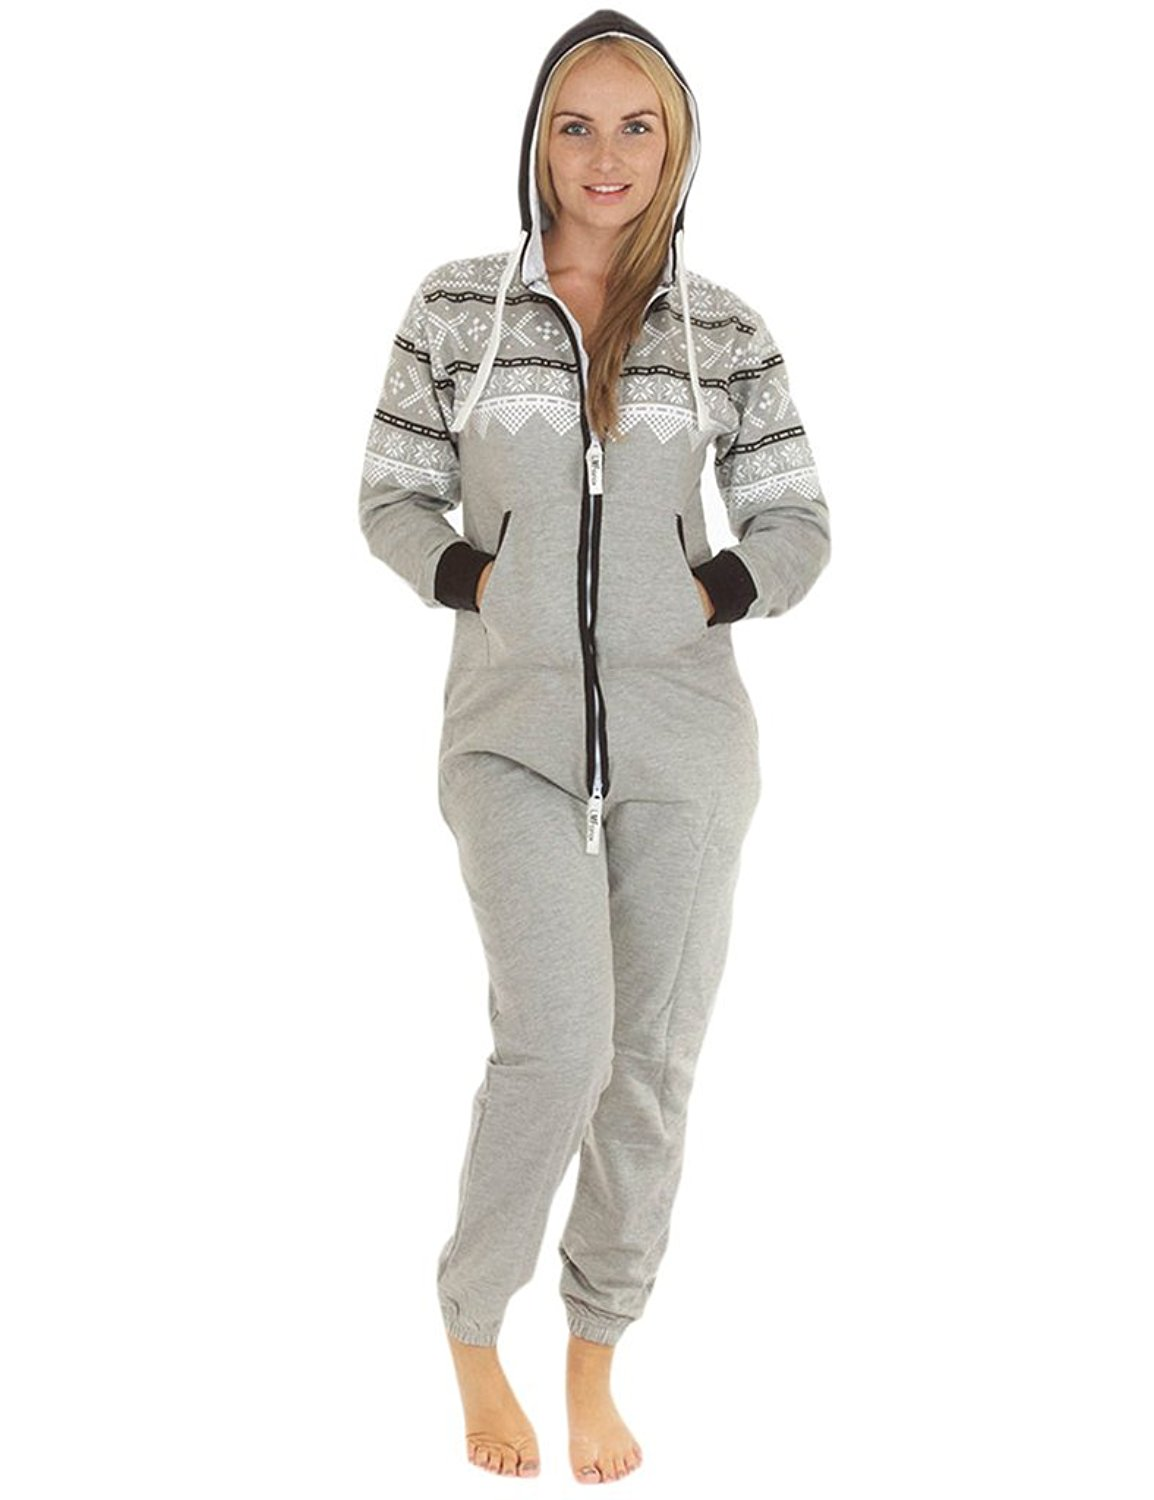 c7ebbd2cd36 Get Quotations · Love My Fashions Women s Teens Aztec Onesie Adult Jumpsuit  XXX-Large Grey